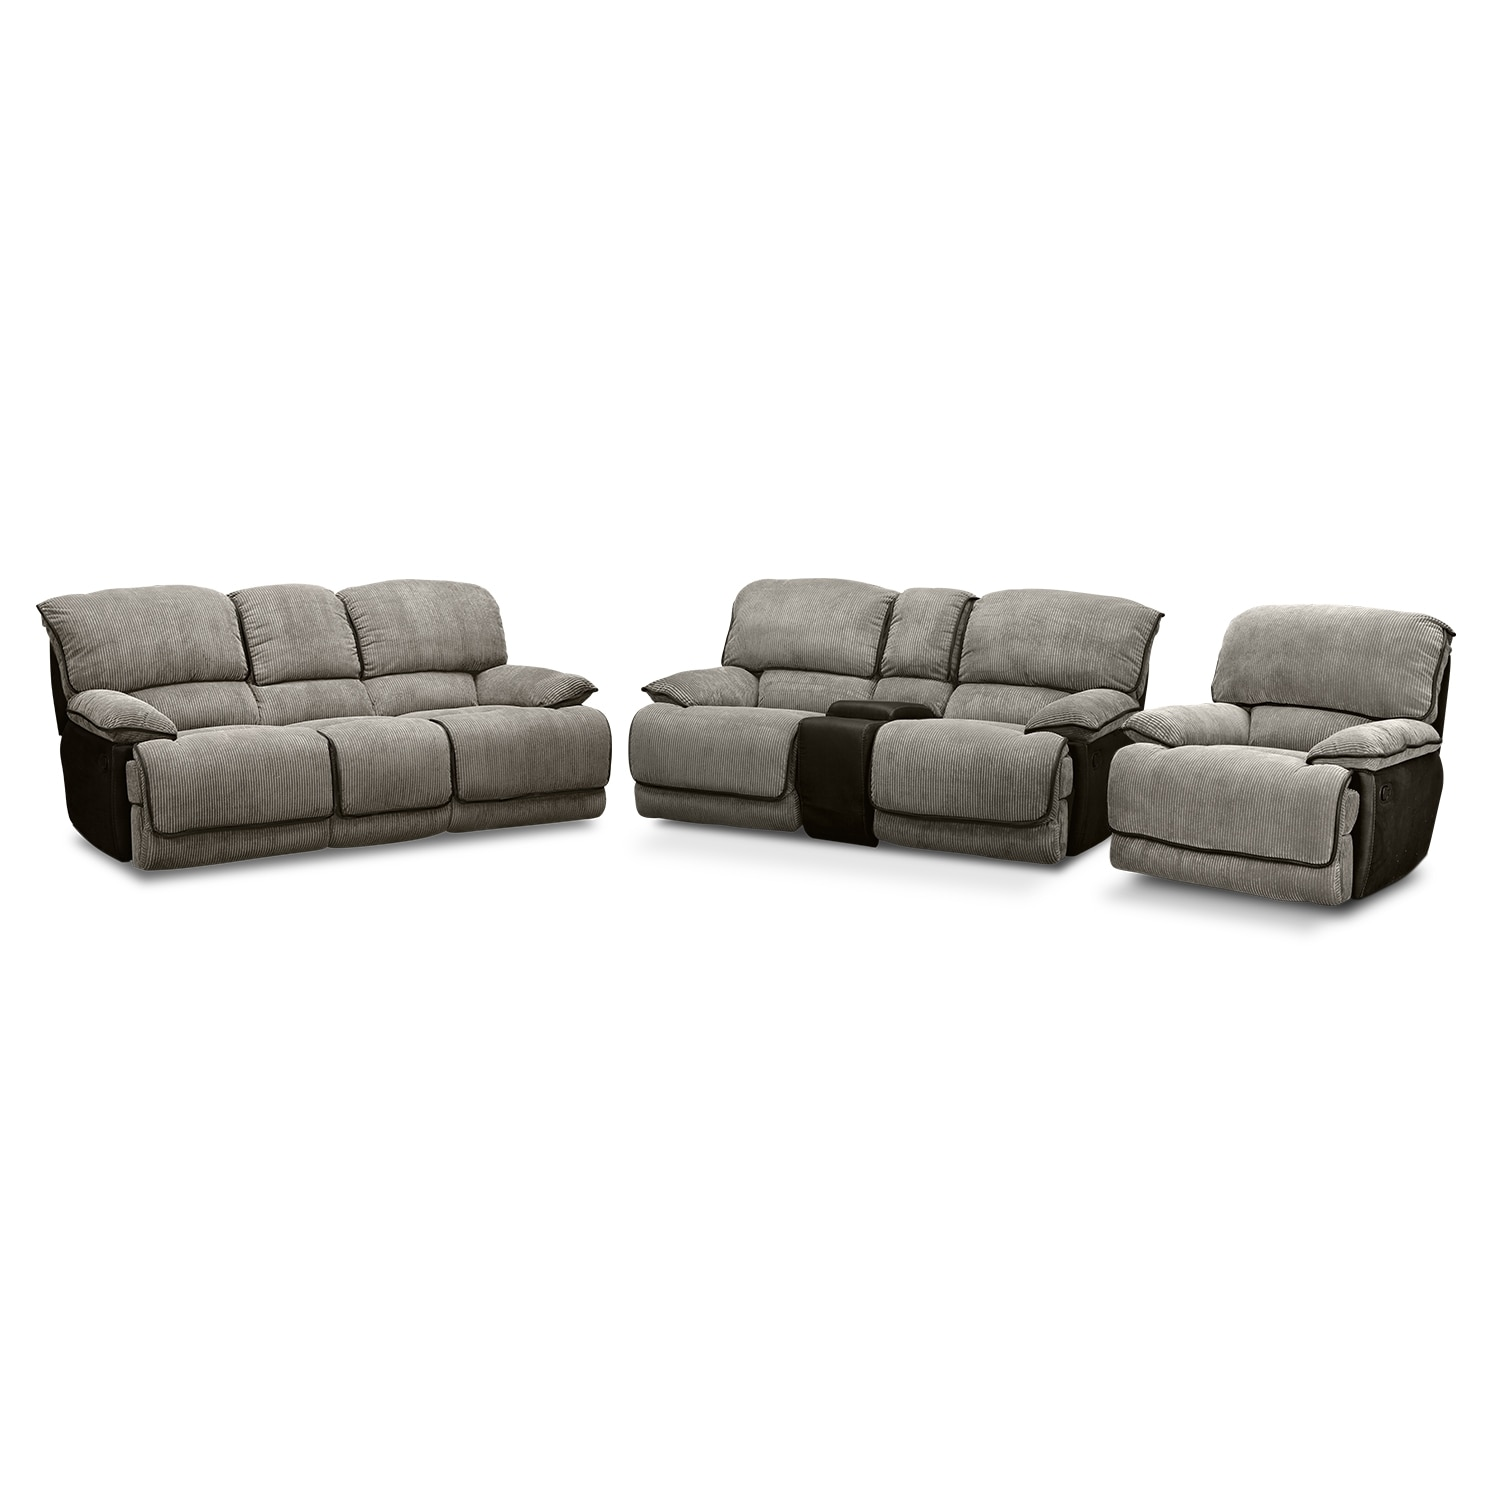 Living Room Furniture - Laguna Reclining Sofa, Gliding Reclining Loveseat and Glider Recliner Set - Steel